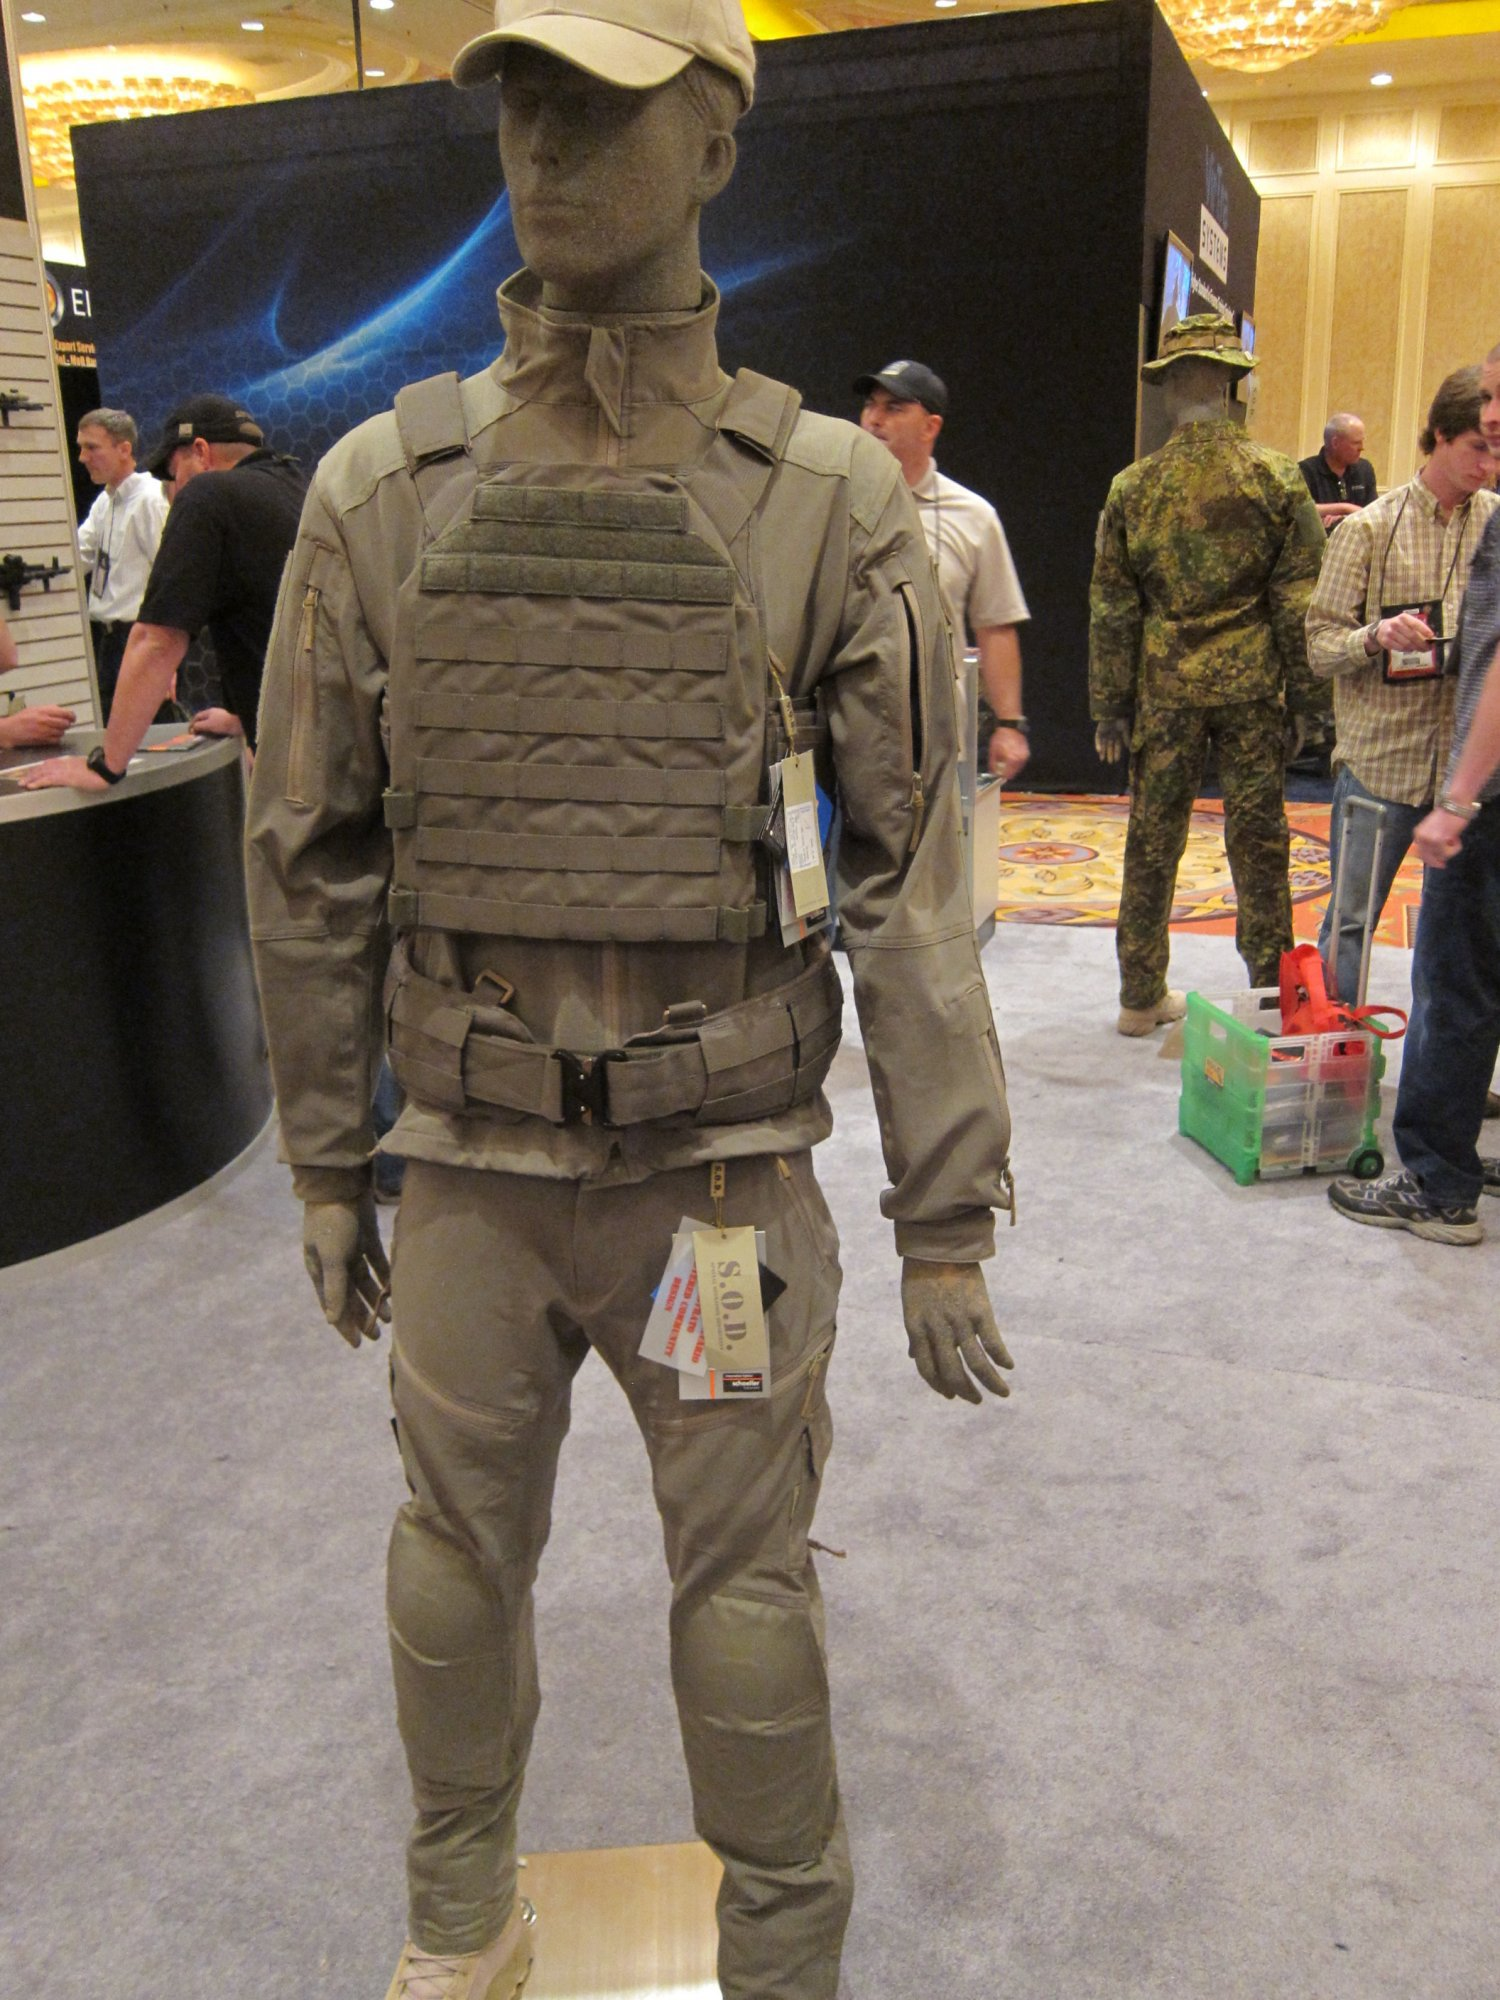 SOD Gear/SOD USA Stealth ADP Battle Jacket and Pants Made with Schoeller Performance Fabric: High-Tech Combat Clothing for Military Special Operations Forces (SOF) and Civilian Tactical Shooters